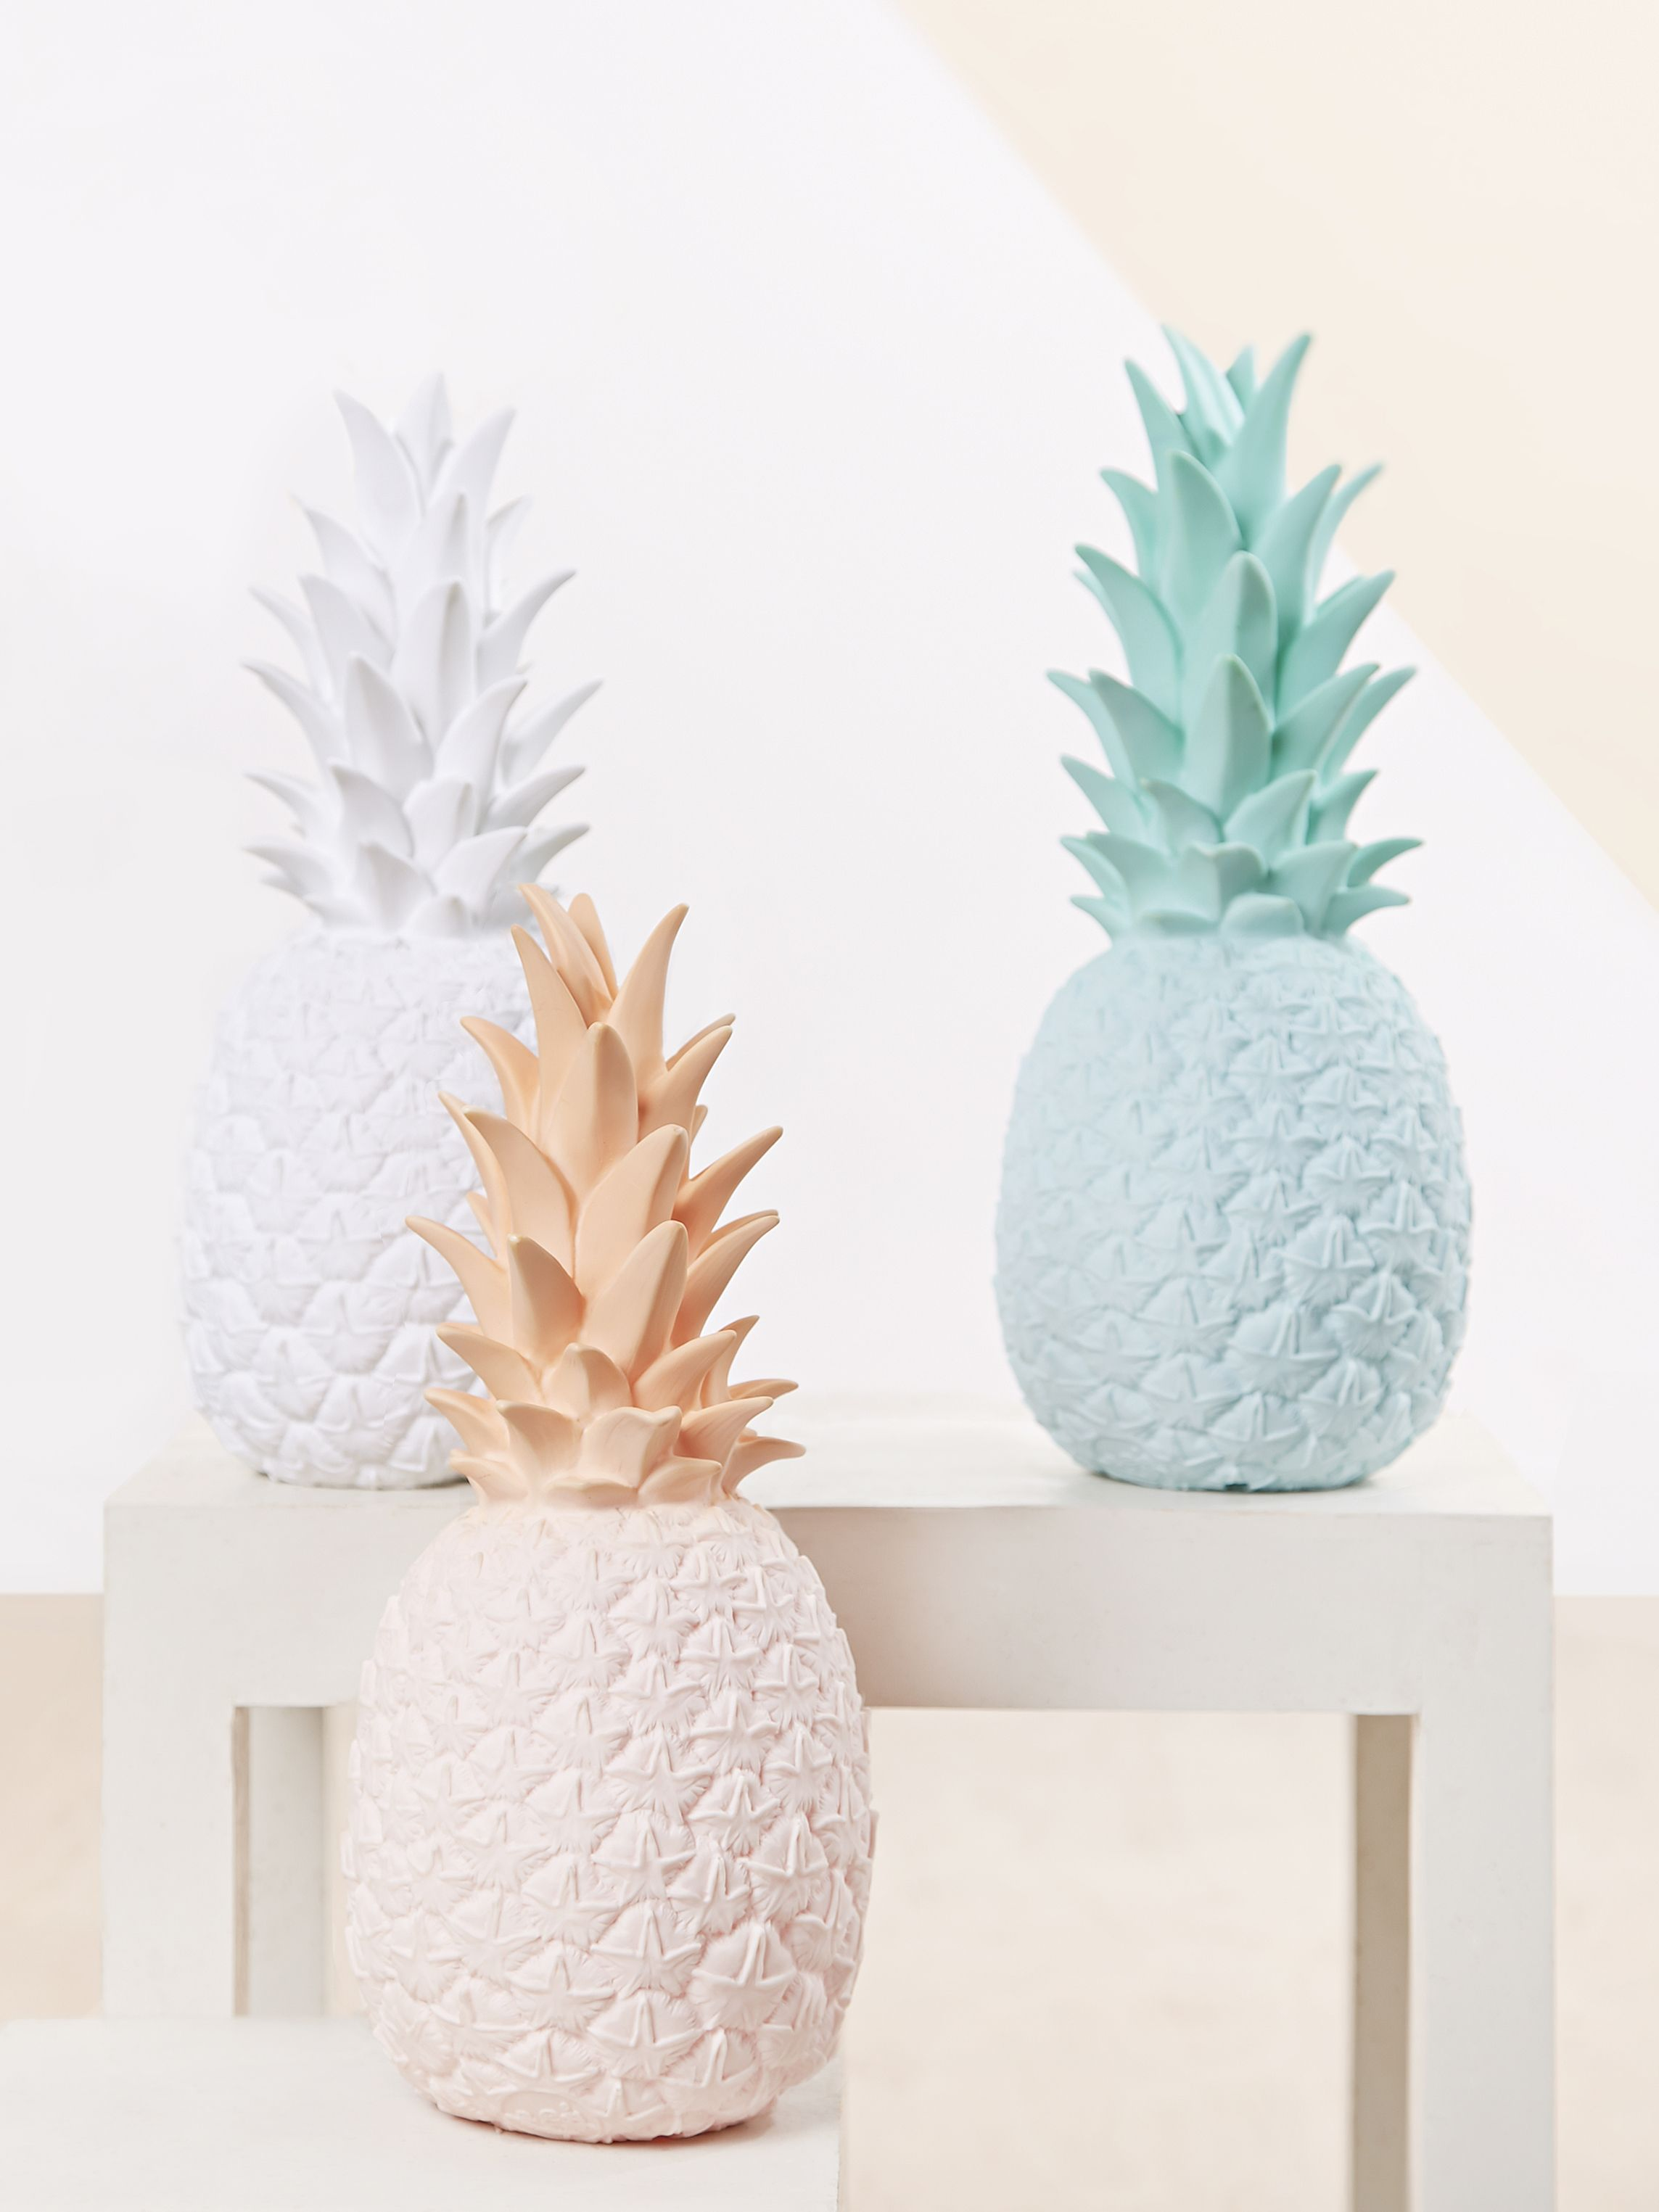 lampes d co en forme d 39 ananas couleur pastel id es d co int rieur objet fruit. Black Bedroom Furniture Sets. Home Design Ideas